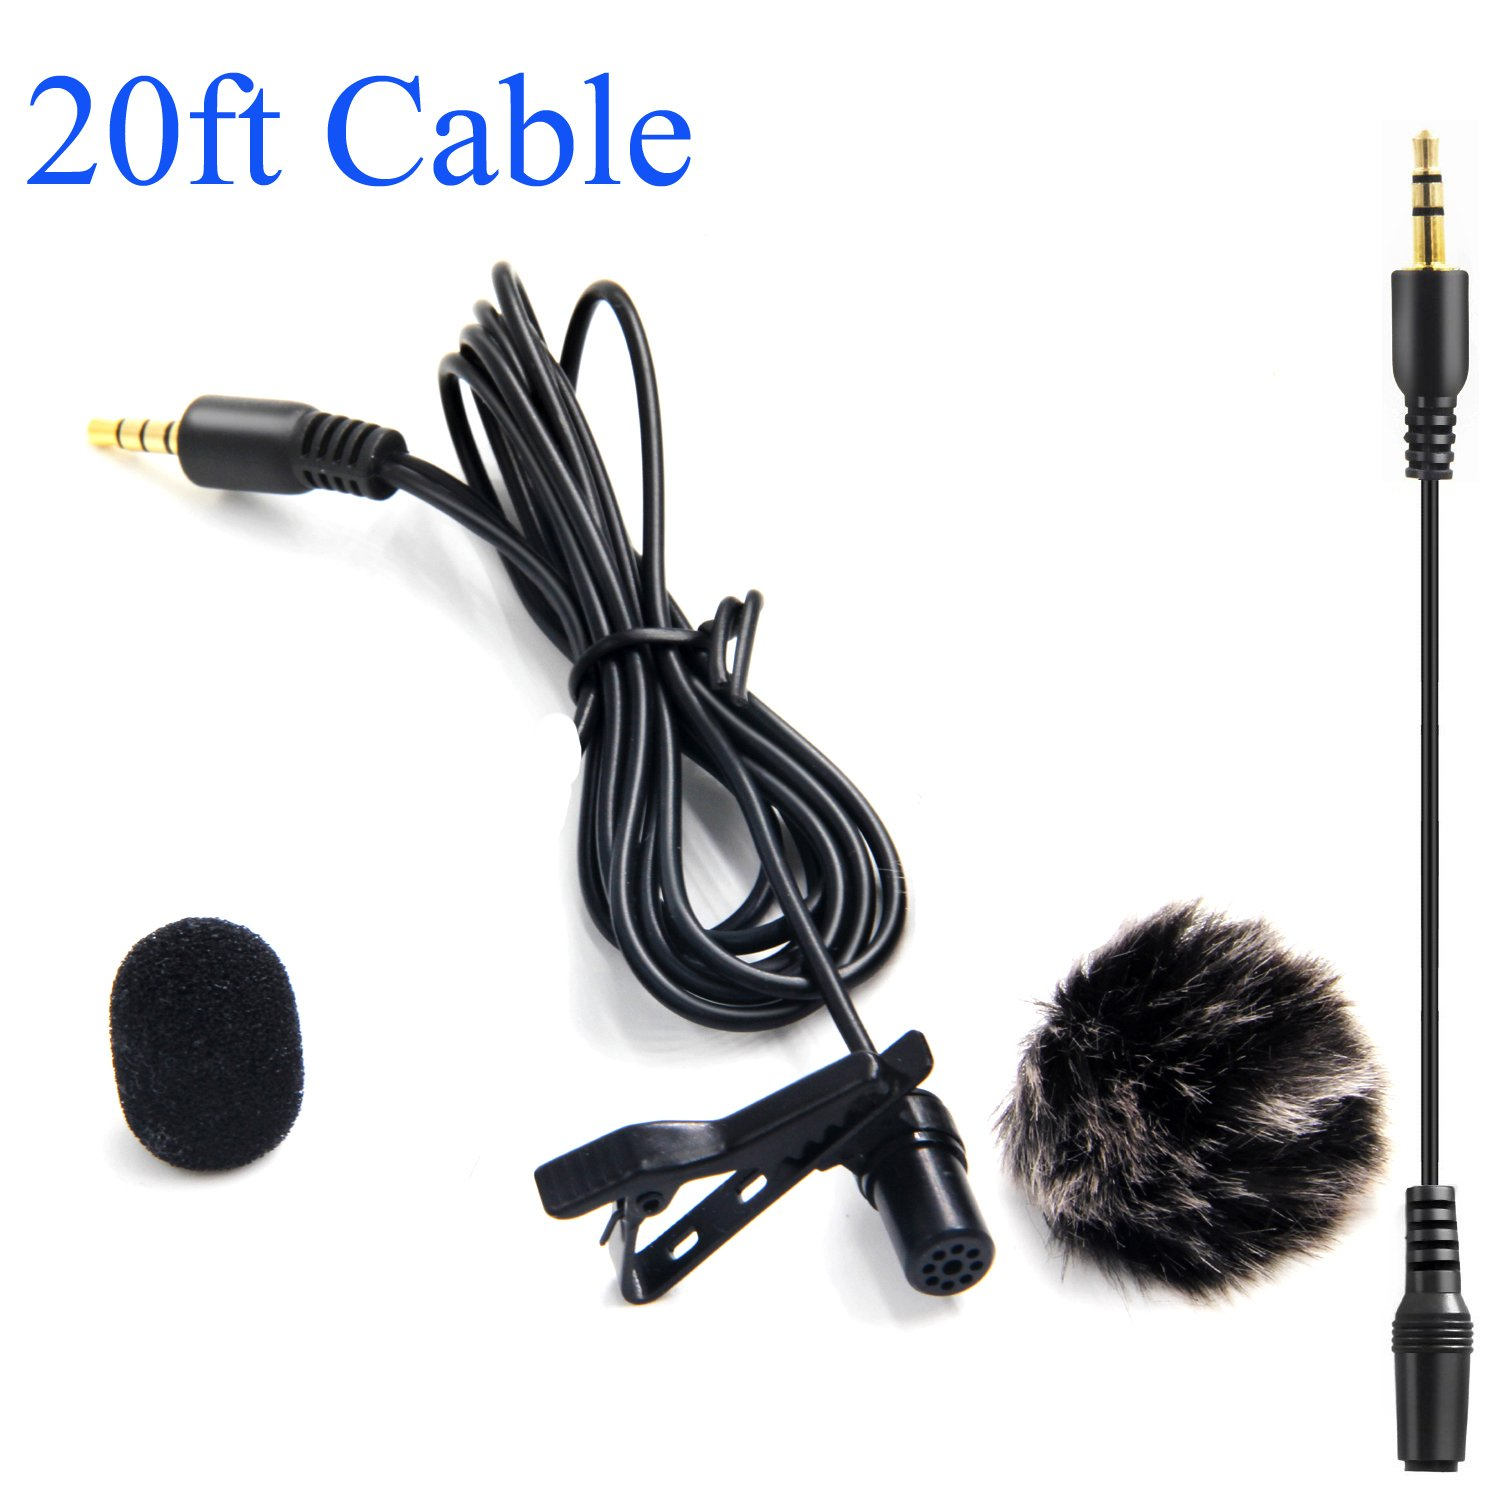 Lavalier Microphone with 1 Windscreen Muff,Nicama LVM3 Lav Lapel Clip-On Mic for DSLR Camera Canon Nikon Sony Camcorder Audio Recorders Smartphones iPhone PC Macbook Podcast by Nicama